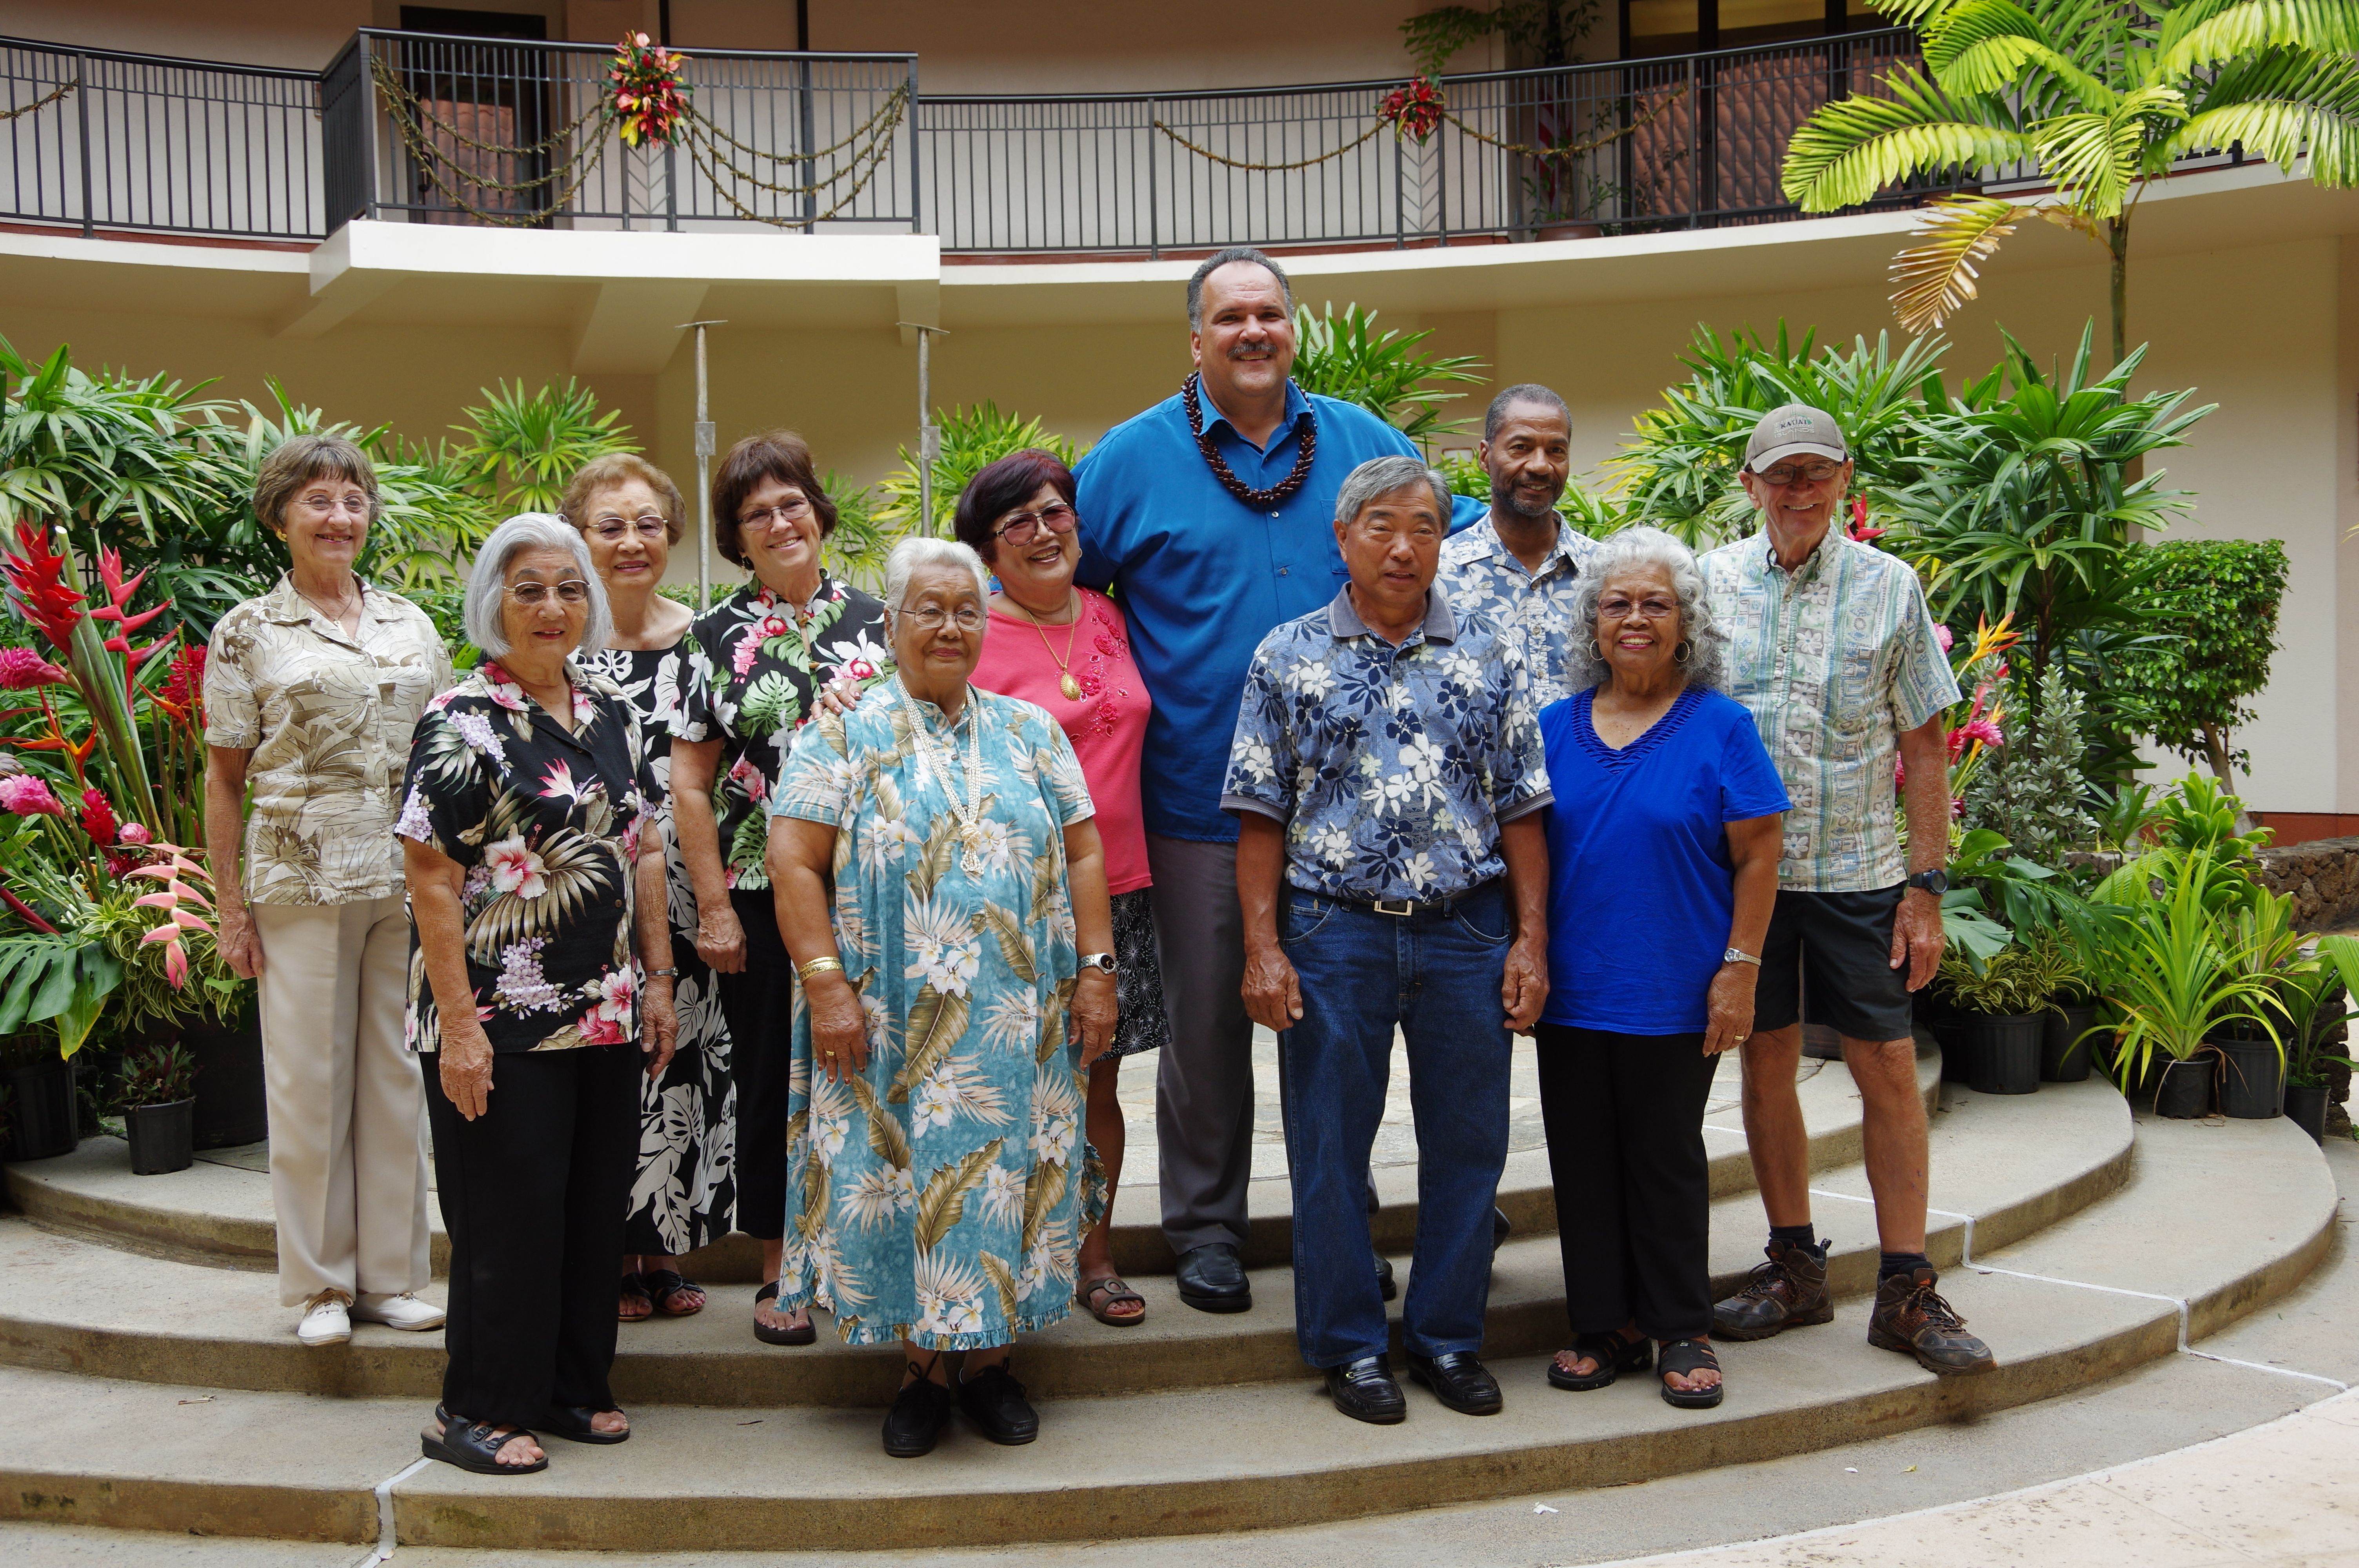 Ten kupuna who were nominated for Kaua'i's Outstanding Older American awards will be honored at the 48th annual Older American Recognition Ceremony next month. The nominees are pictured with Mayor Bernard Carvalho, Jr. From L to R: Deloros Kaauwai; Asako Iwamoto; Yukie Okino; JoAnne Machin; Aida Rajel; Marilyn Matsumoto; Mayor Bernard Carvalho, Jr.; Roy Miyashiro; Robert Sims; Florentina Moreno and Loren Johnson.